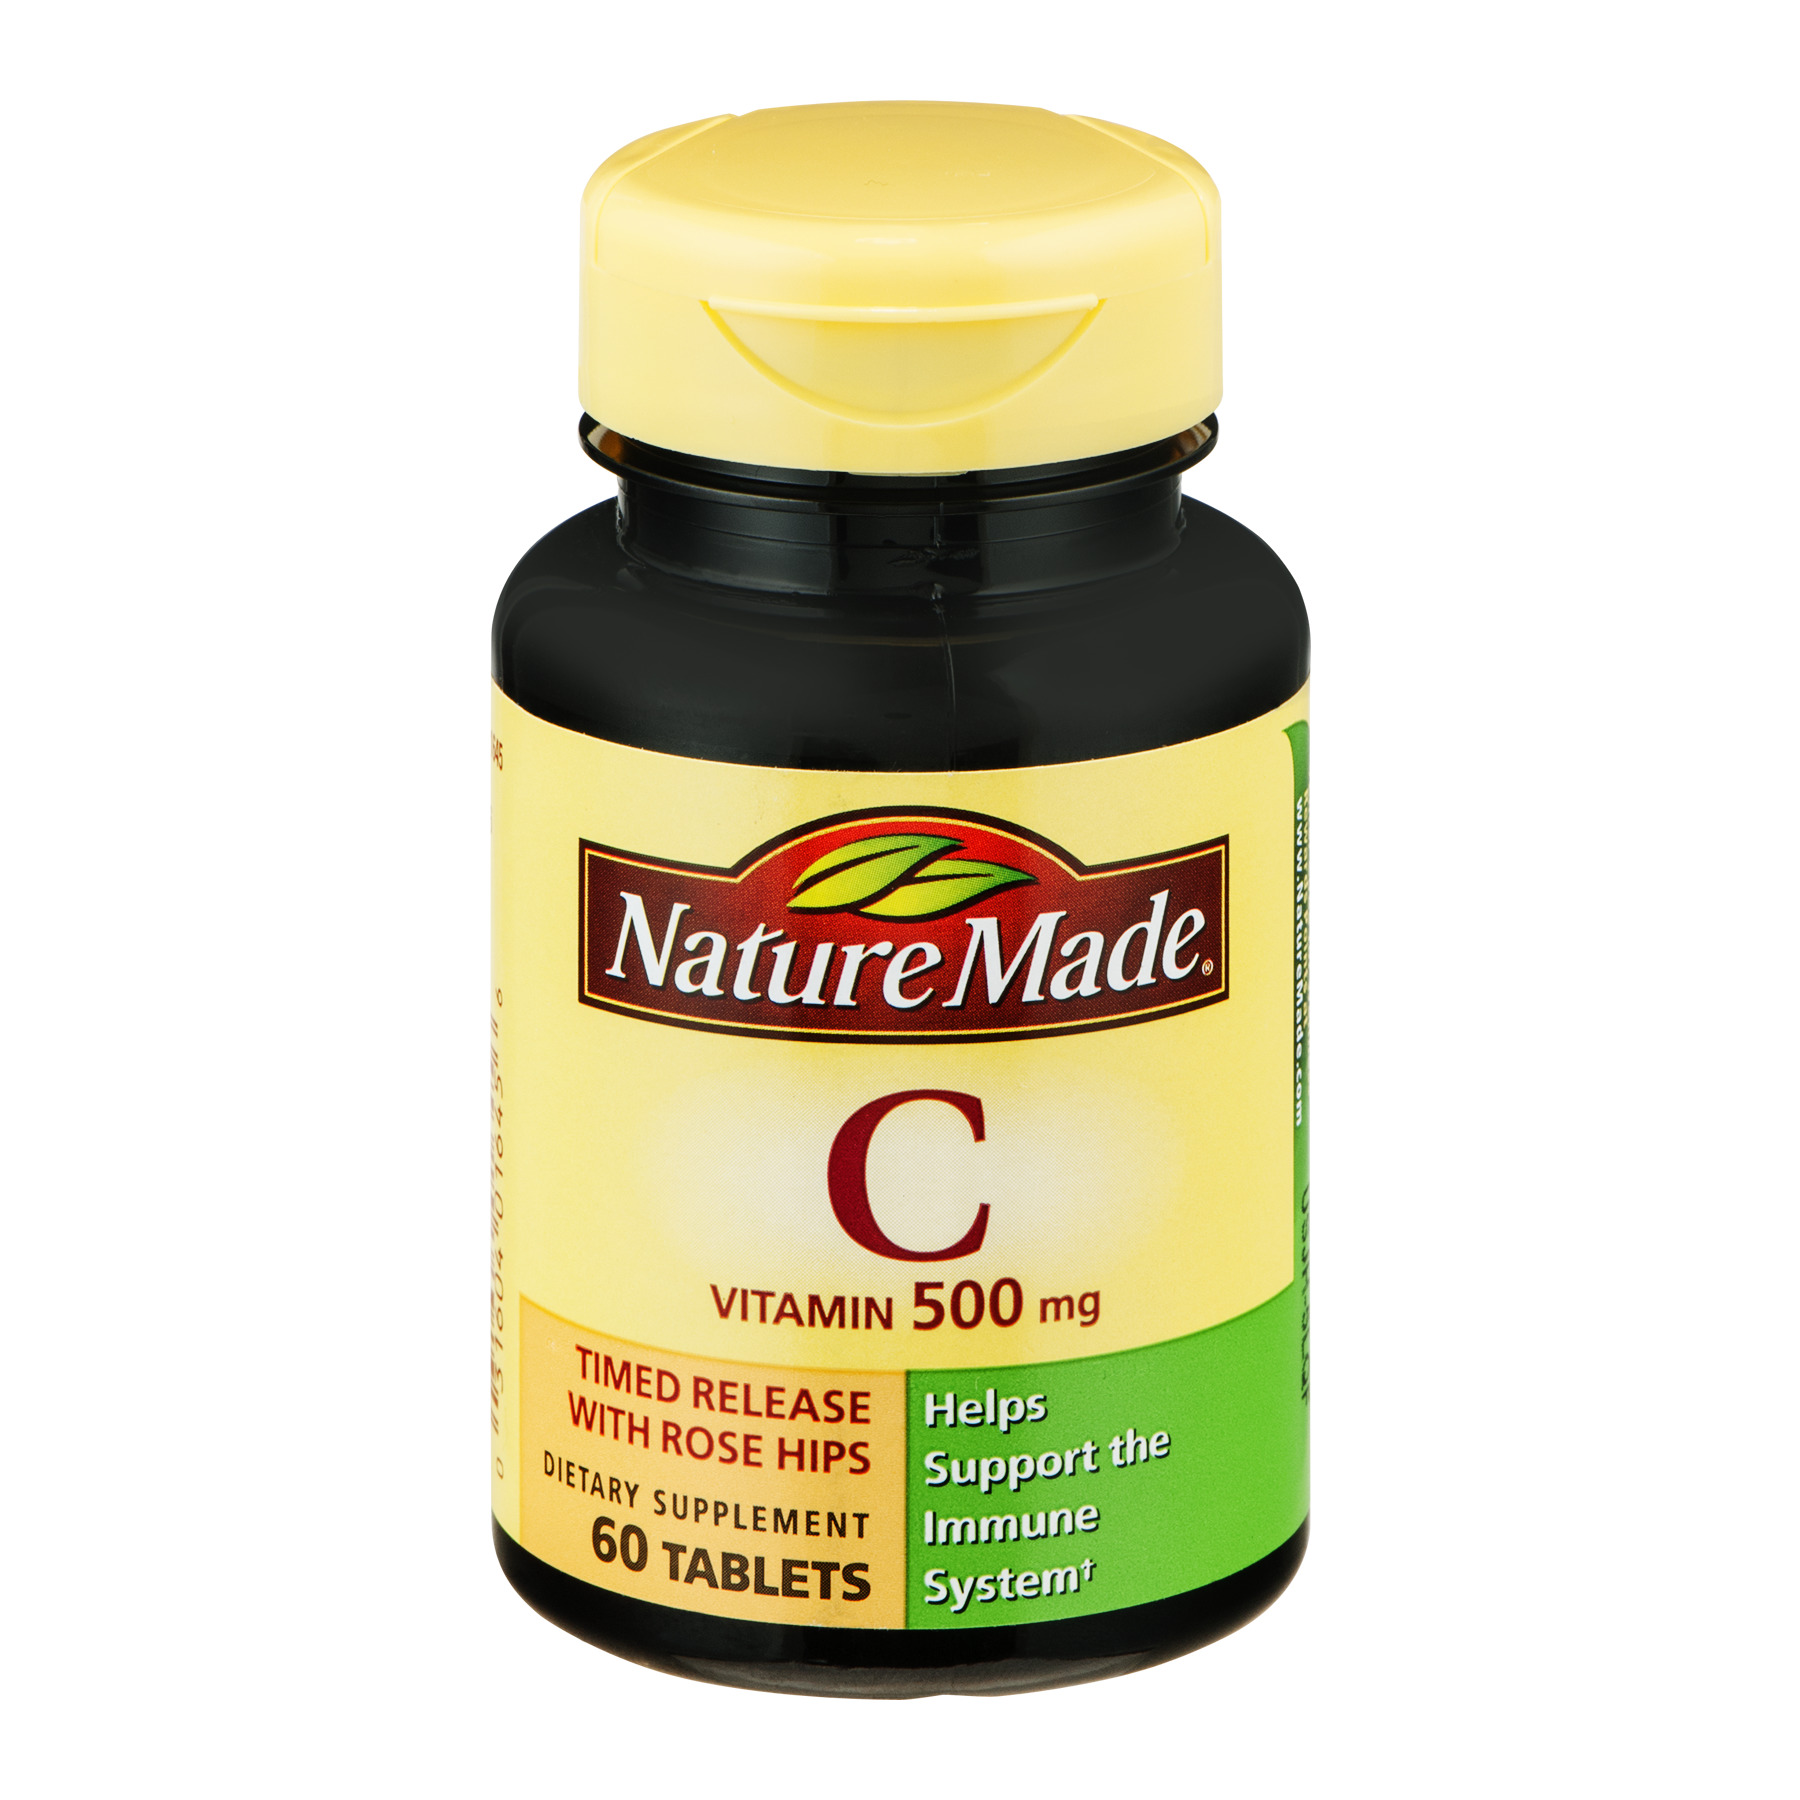 Nature Made C Vitamin 500mg Tablets - 60 CT60.0 CT